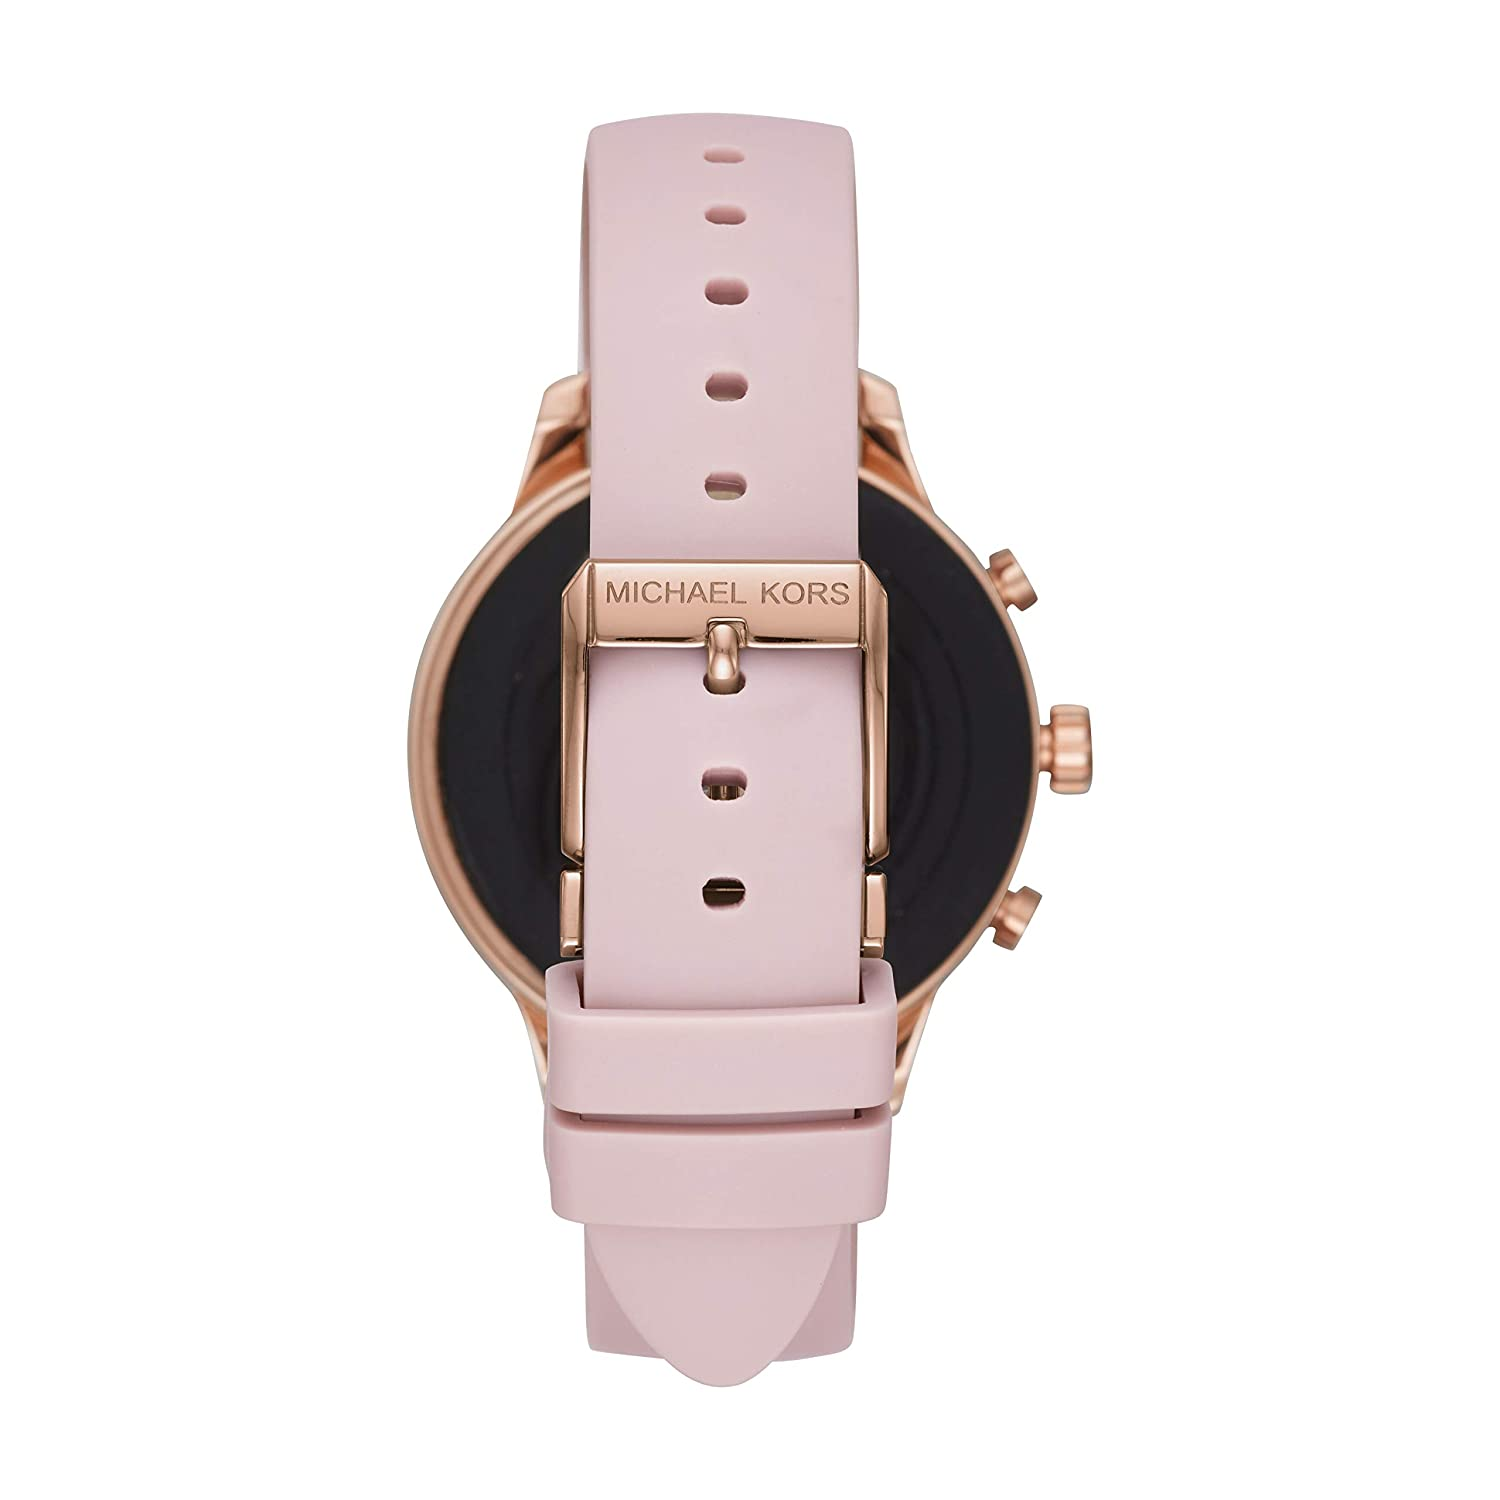 44f44e58a237 Amazon.com  Michael Kors Women s Access Runway Stainless Steel Silicone Smart  Watch